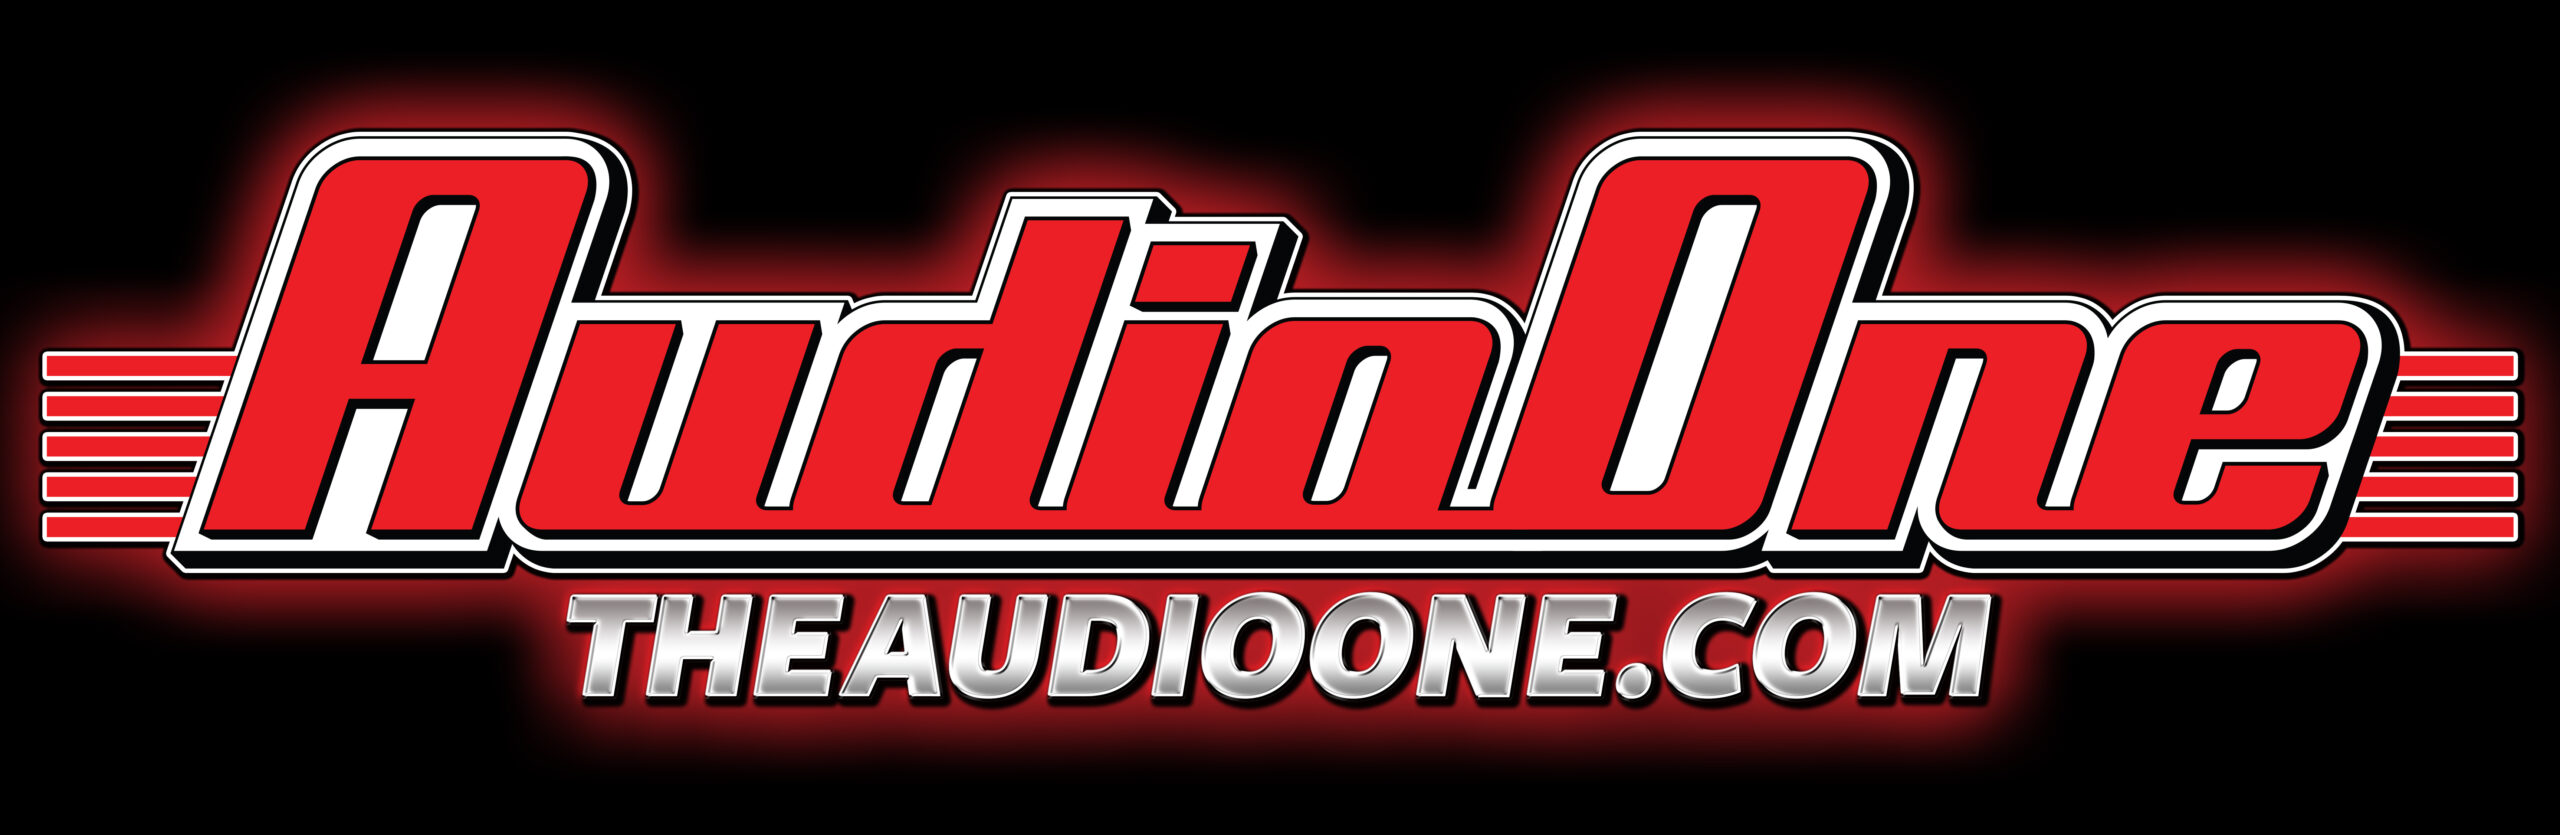 Audio One